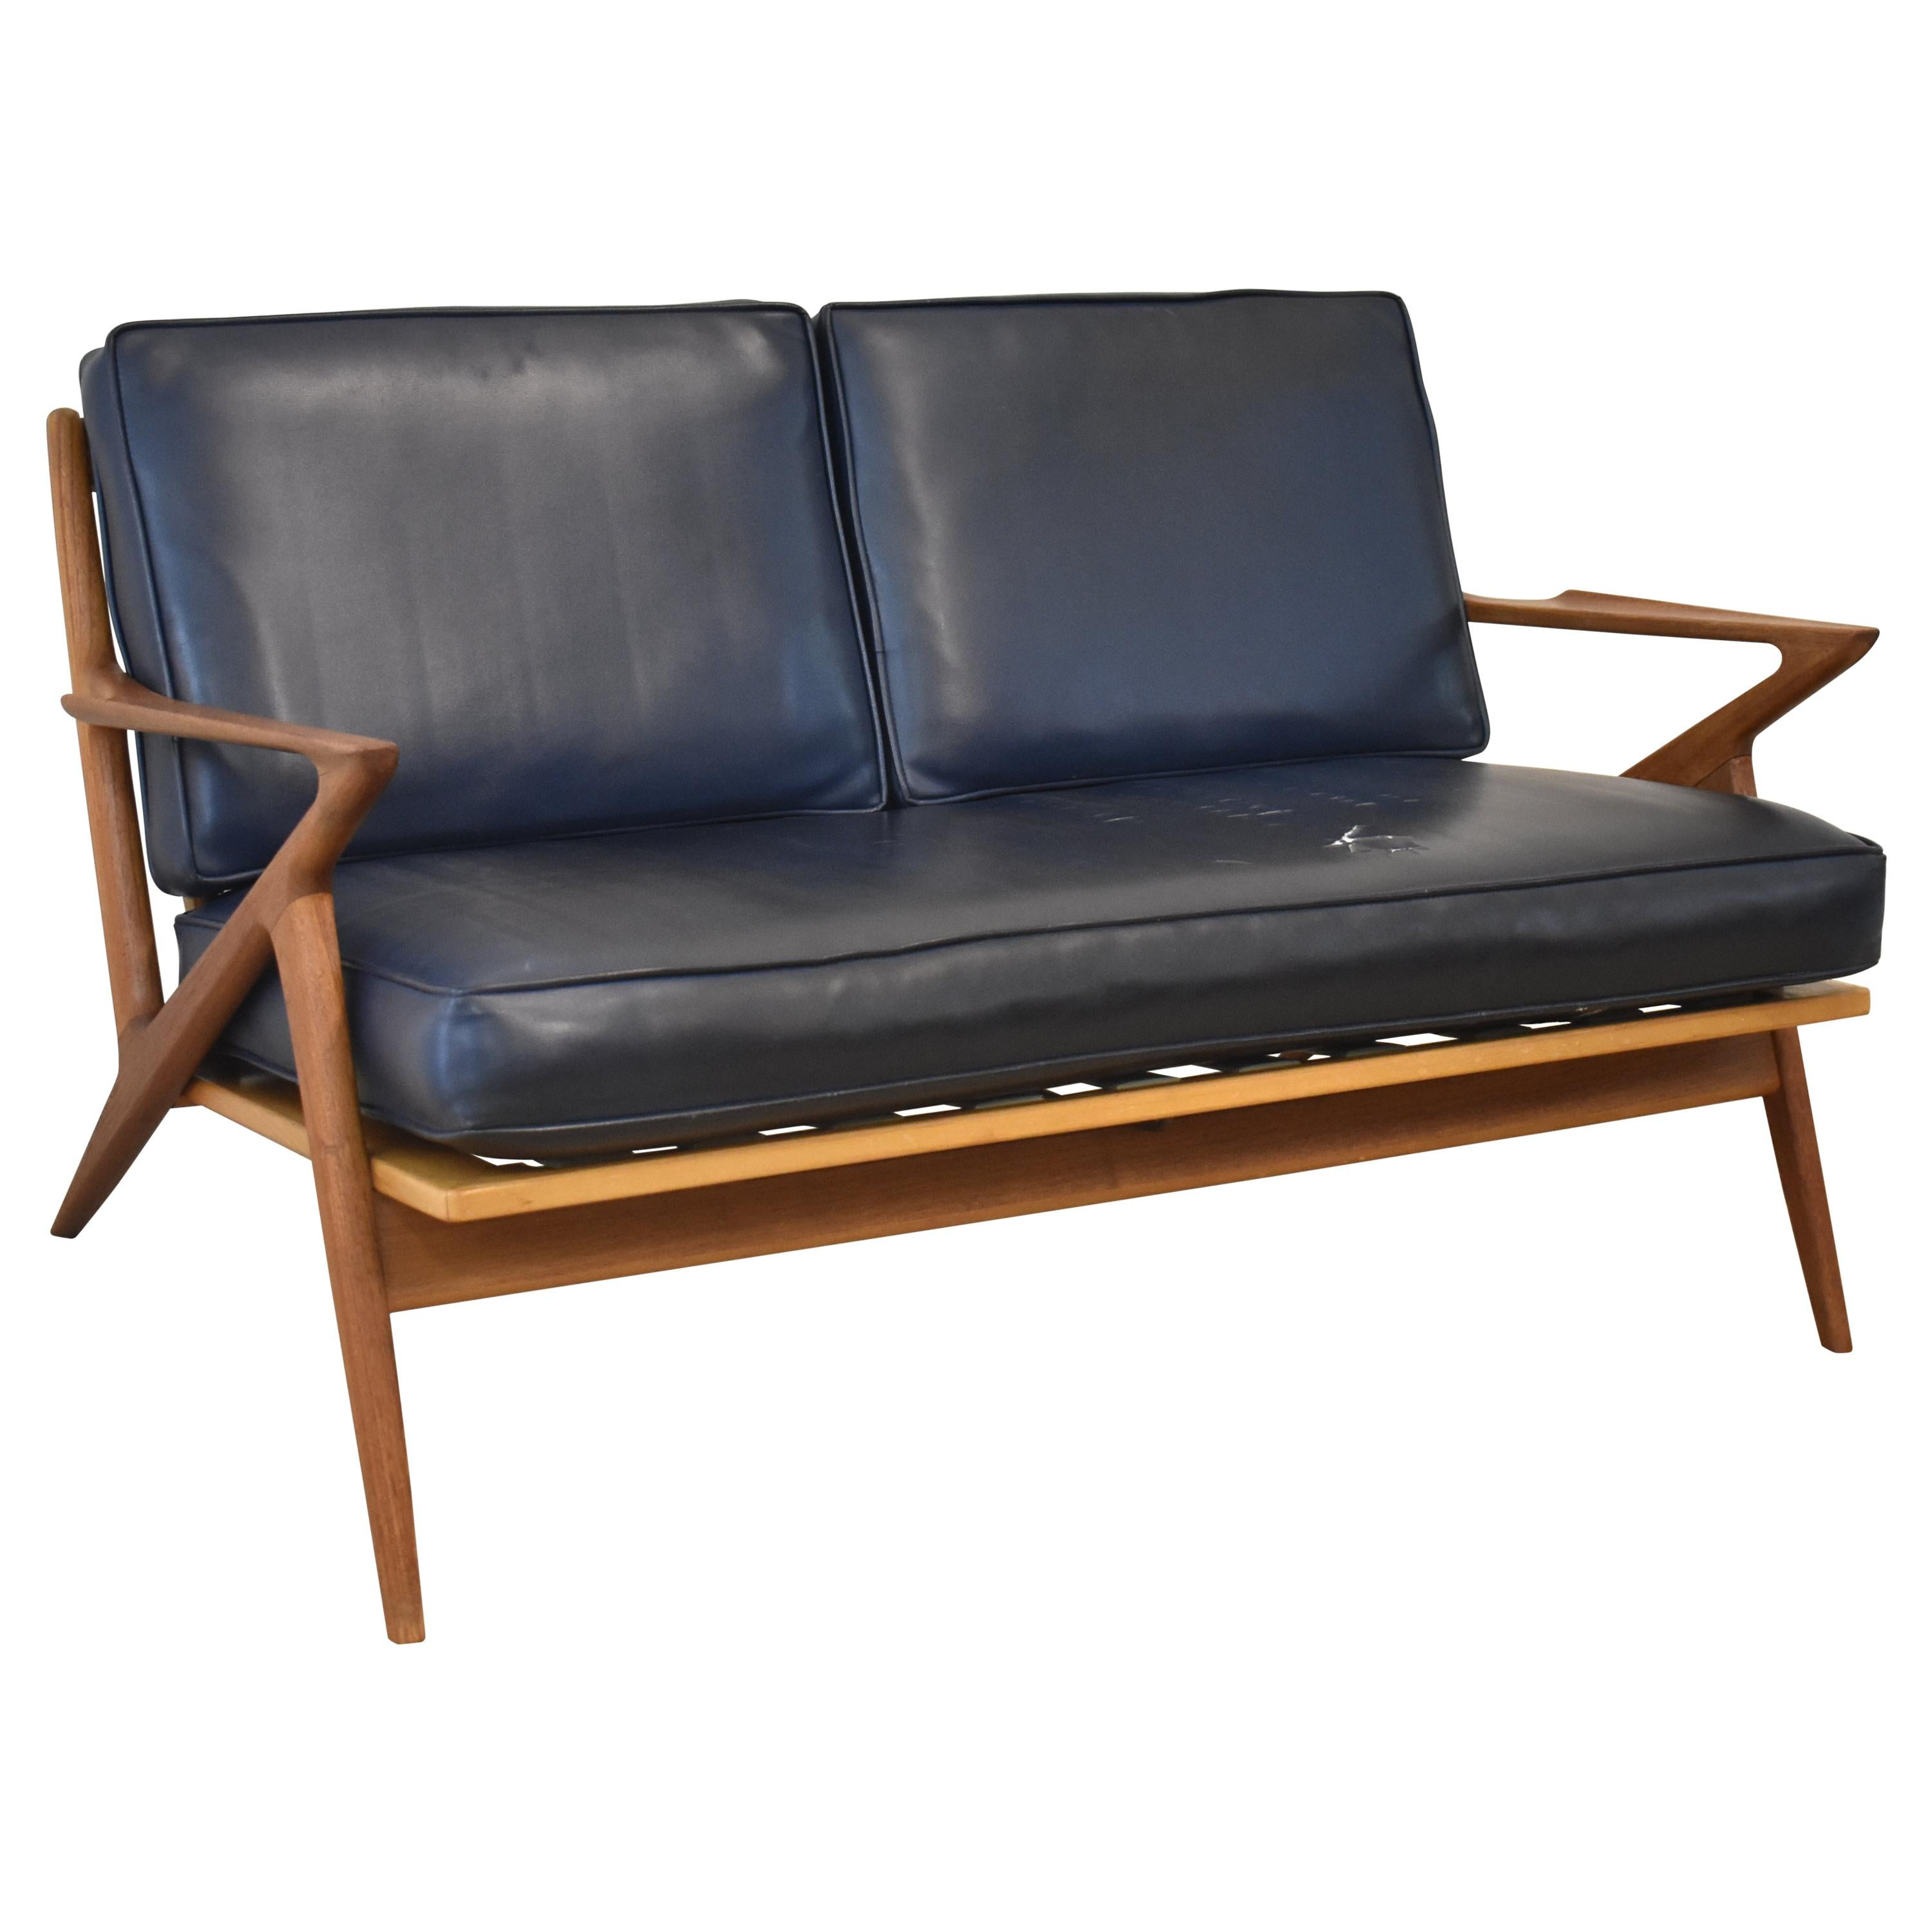 Fabulous Danish Mid Century Modern Teak Three Cushion Z Sofa By Poul Jensen For Selig Alphanode Cool Chair Designs And Ideas Alphanodeonline